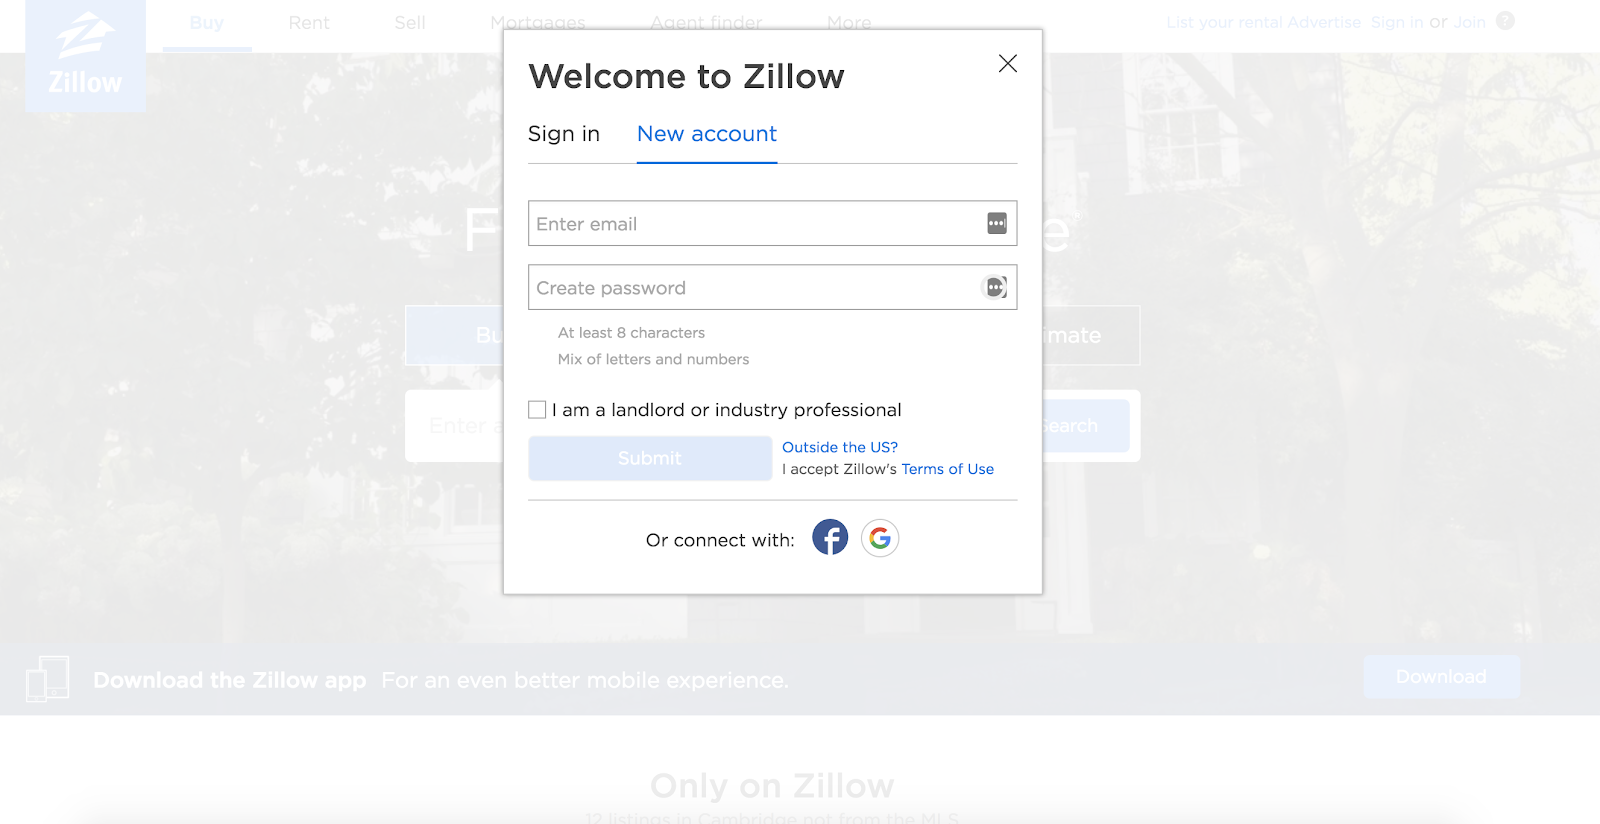 zillow-lead-generation-form